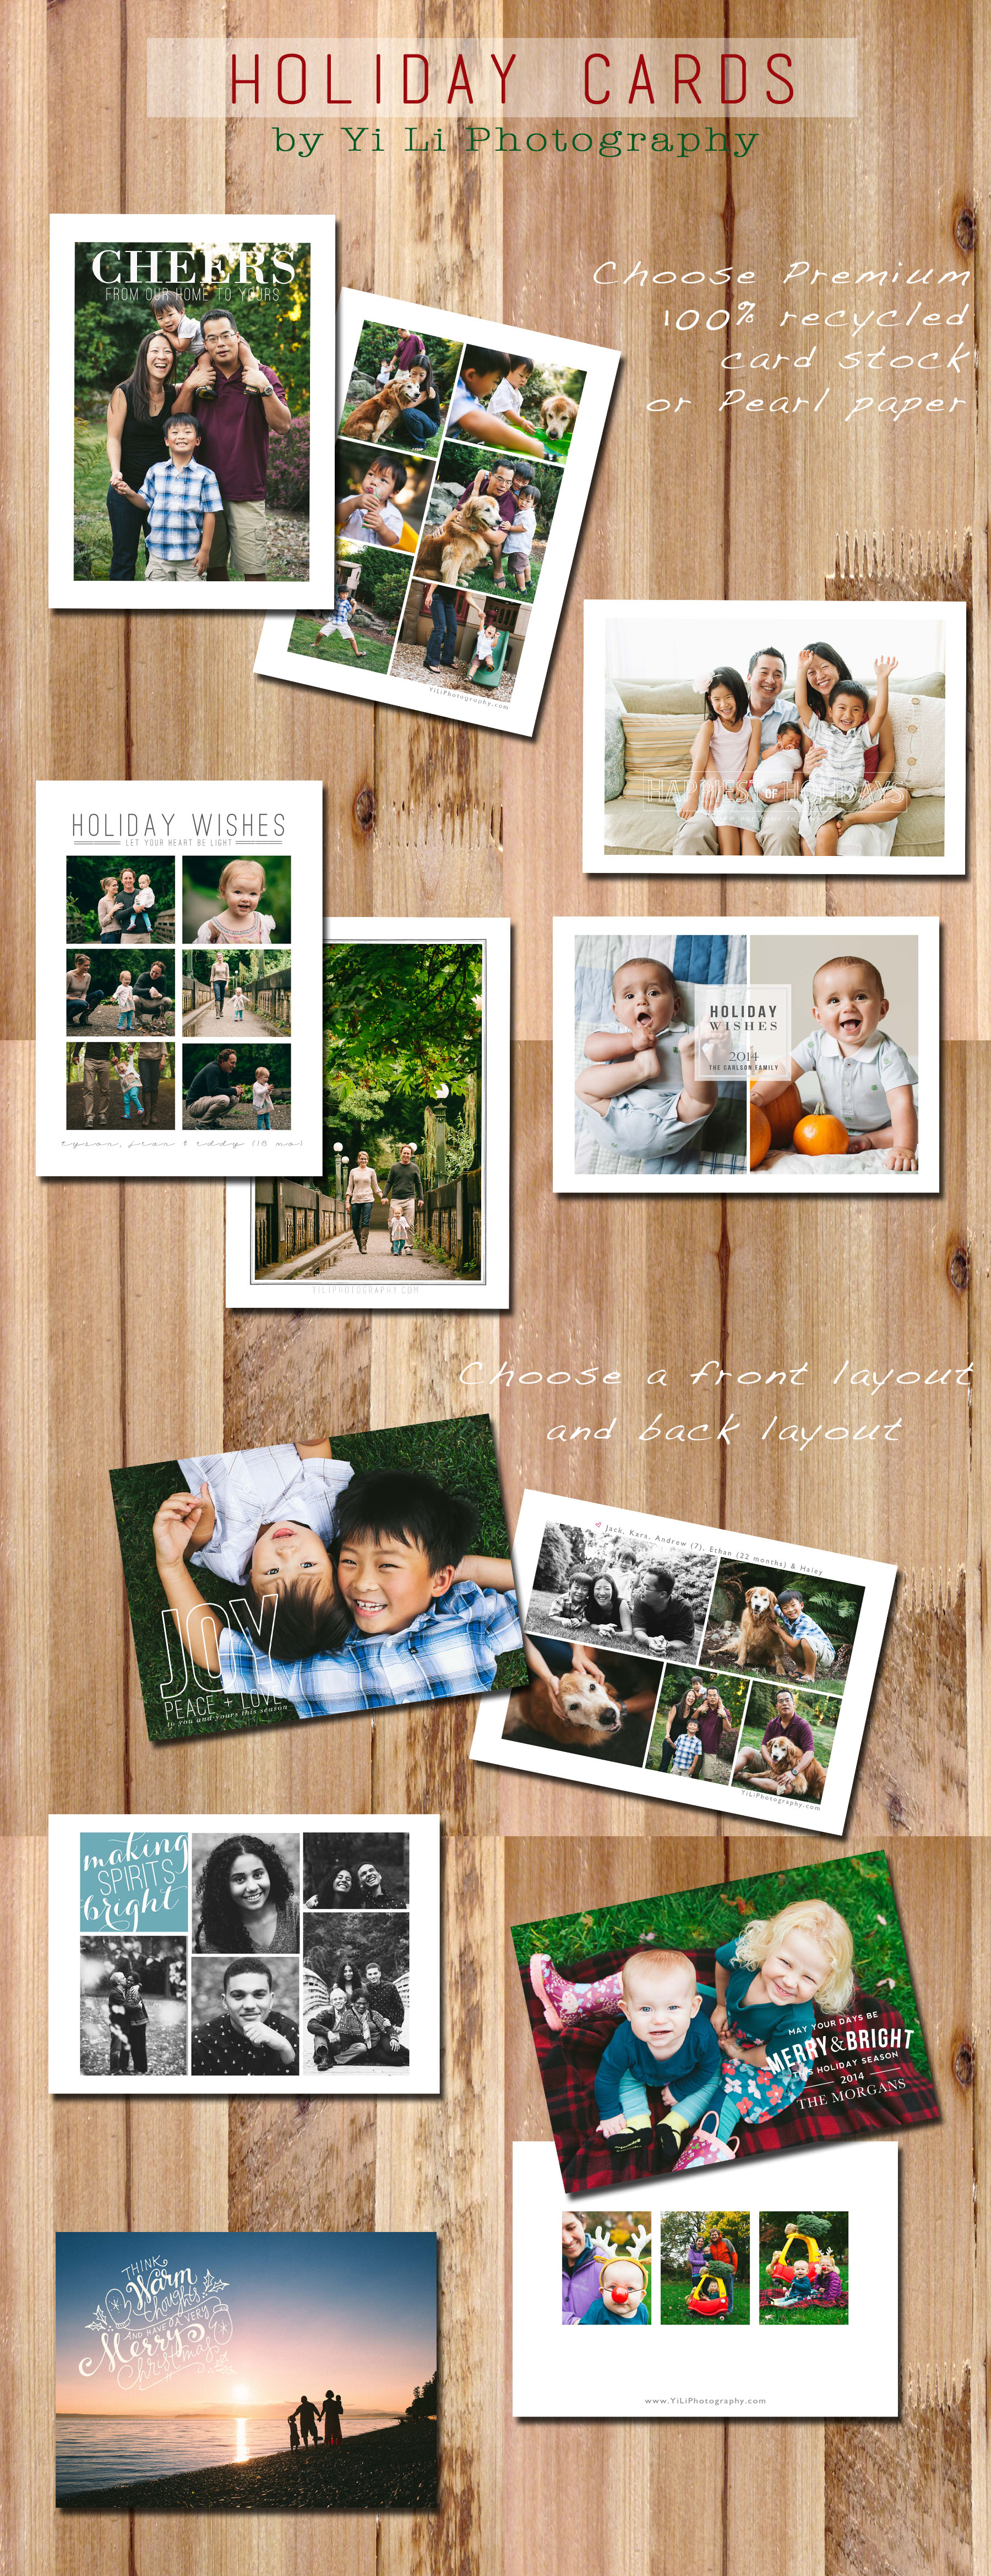 Greeting cards have all been sent holiday cards 2014 yi li seattle custom photo card photographer m4hsunfo